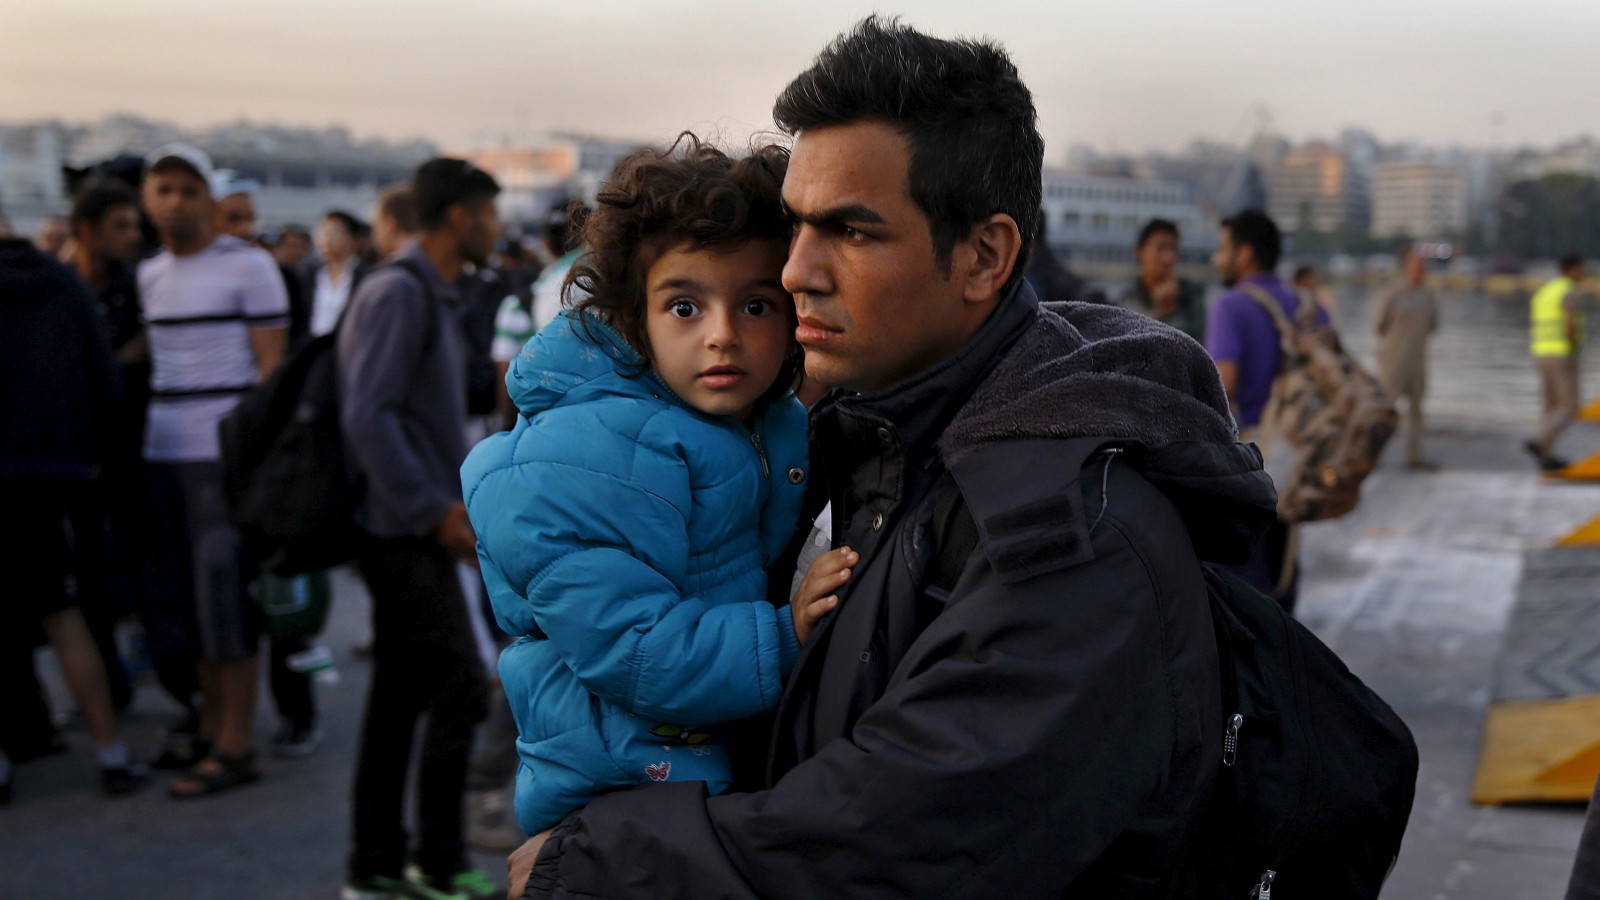 Syrian refugees disembark from a Greek ferry after arriving in the port of Piraeus near Athens June 14, 2015.